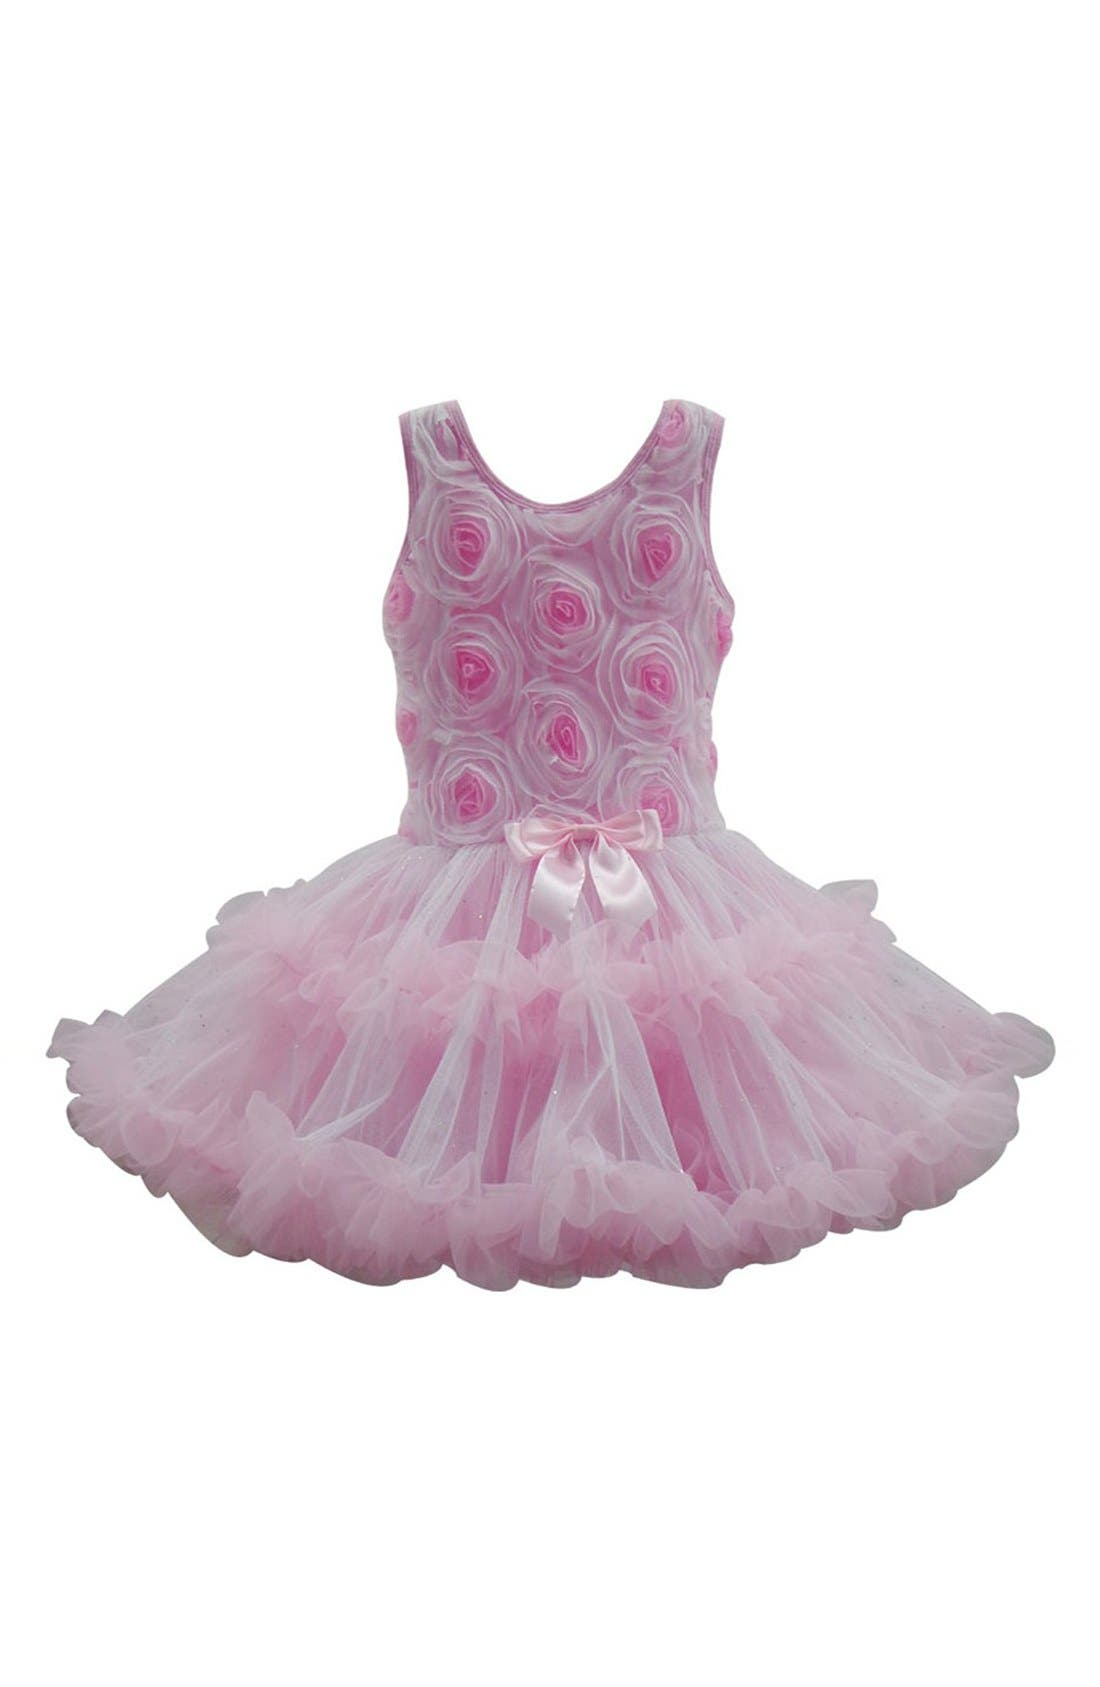 Alternate Image 1 Selected - Popatu Ribbon Rosette Flower Petidress (Baby Girls)